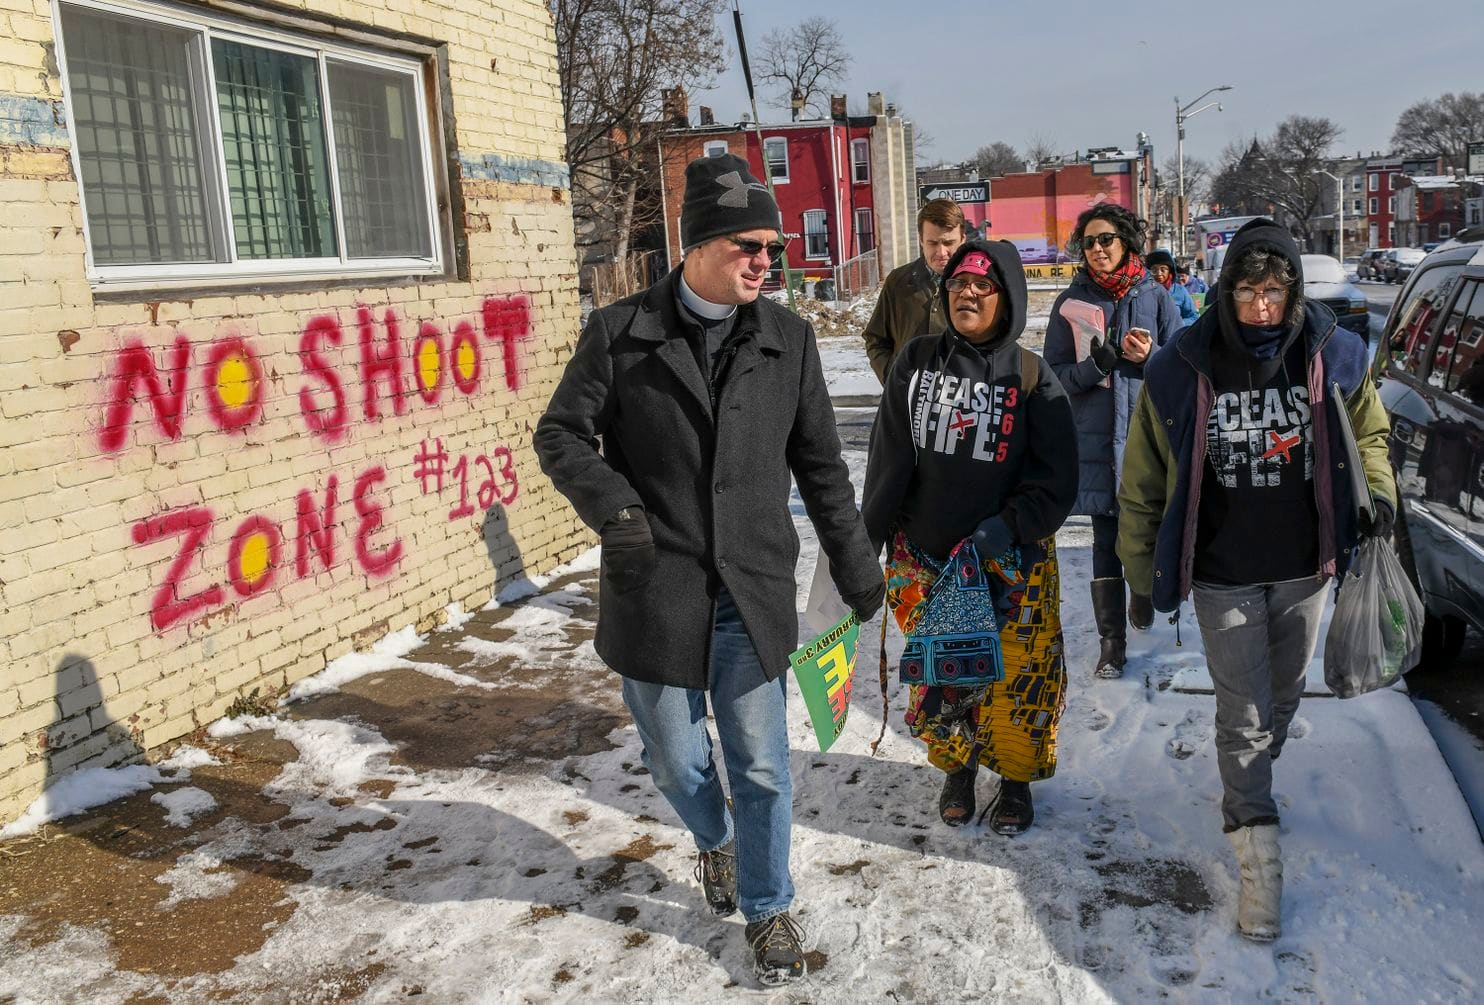 Baltimore's Ceasefire program strives to create peace amid the violence- at least for a weekend